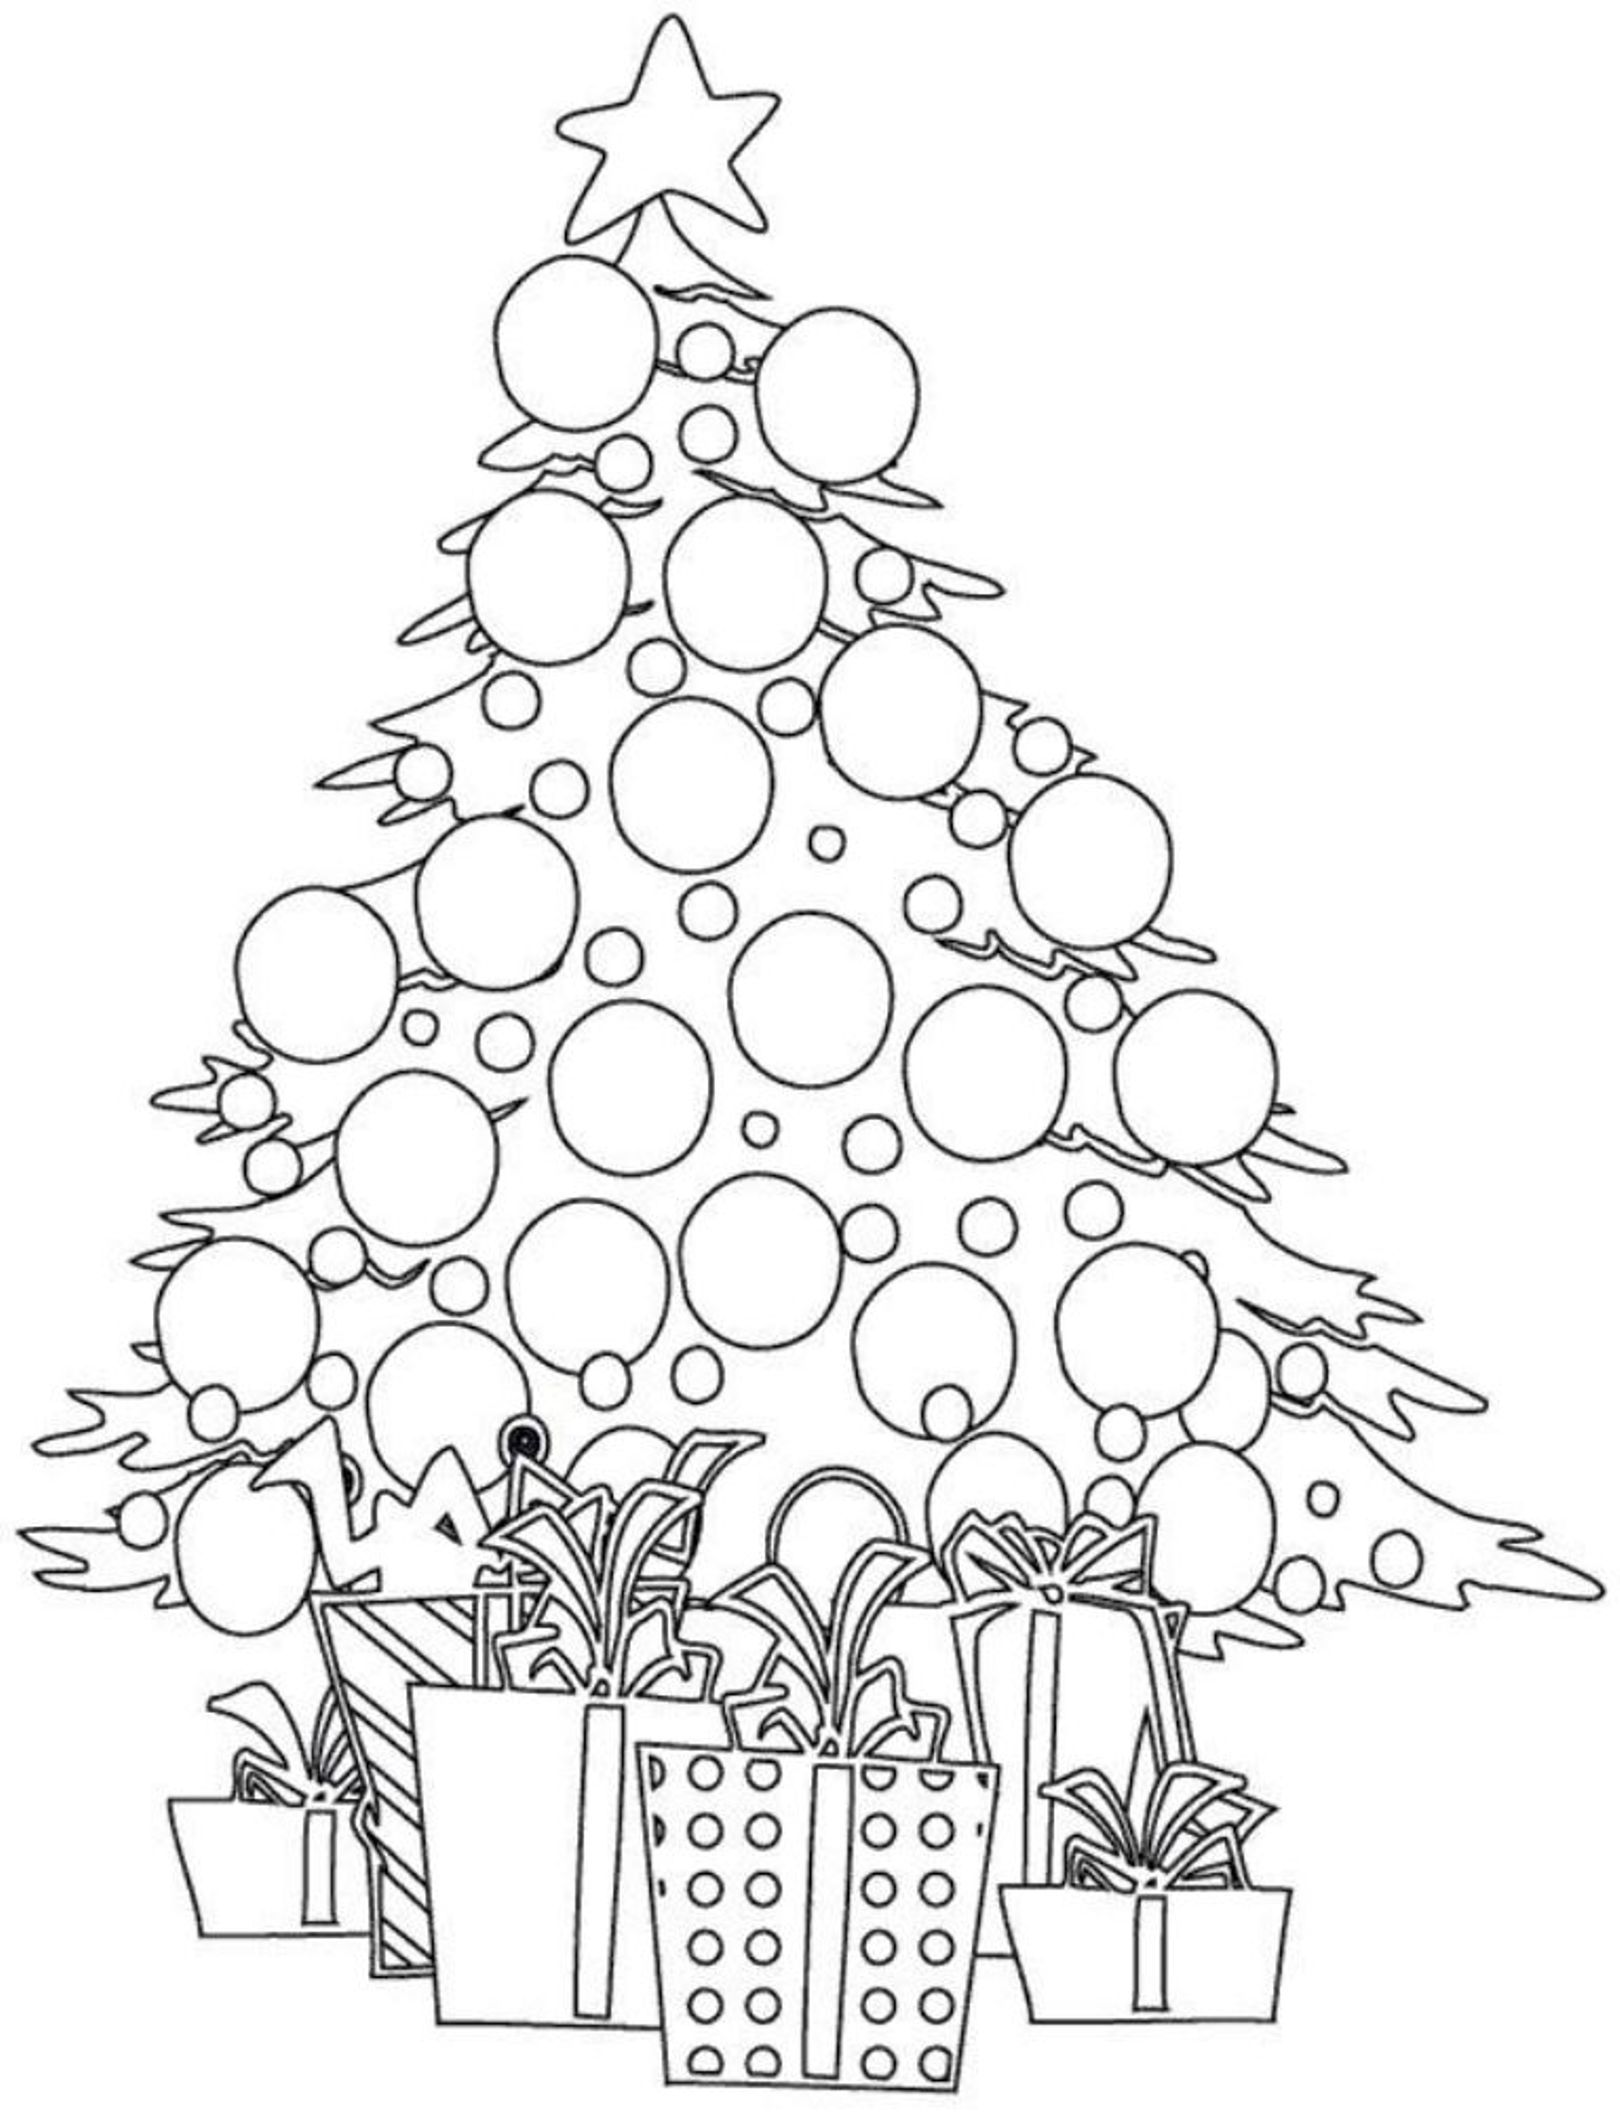 Christmas Tree And Presents Coloring Pages - Christmas Coloring ...